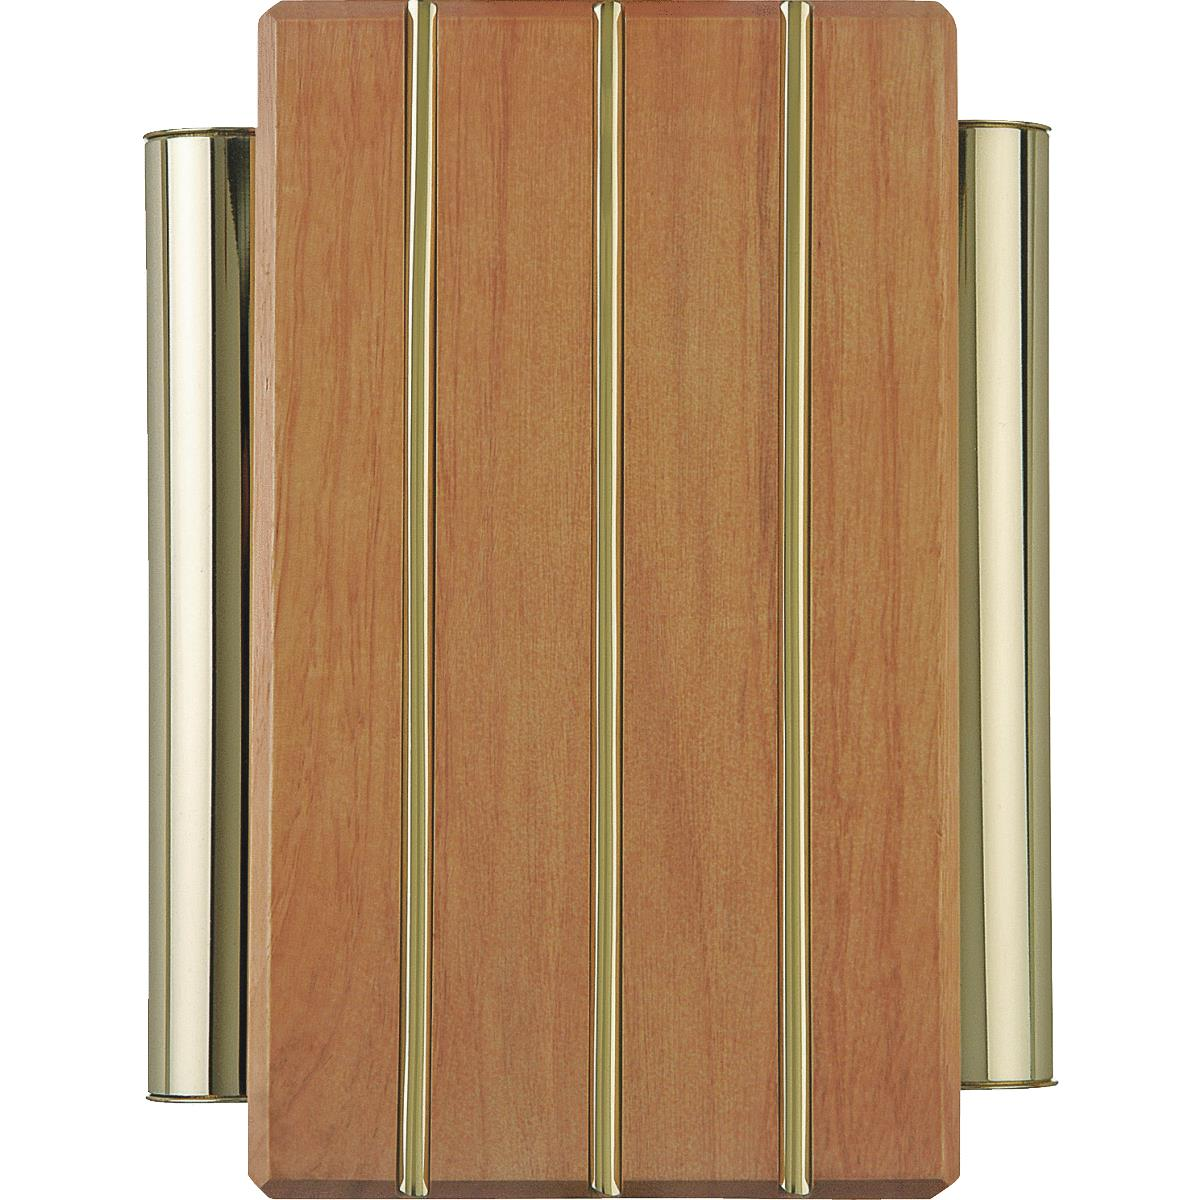 Carlon Brass Finished Wood Wired Door Chime